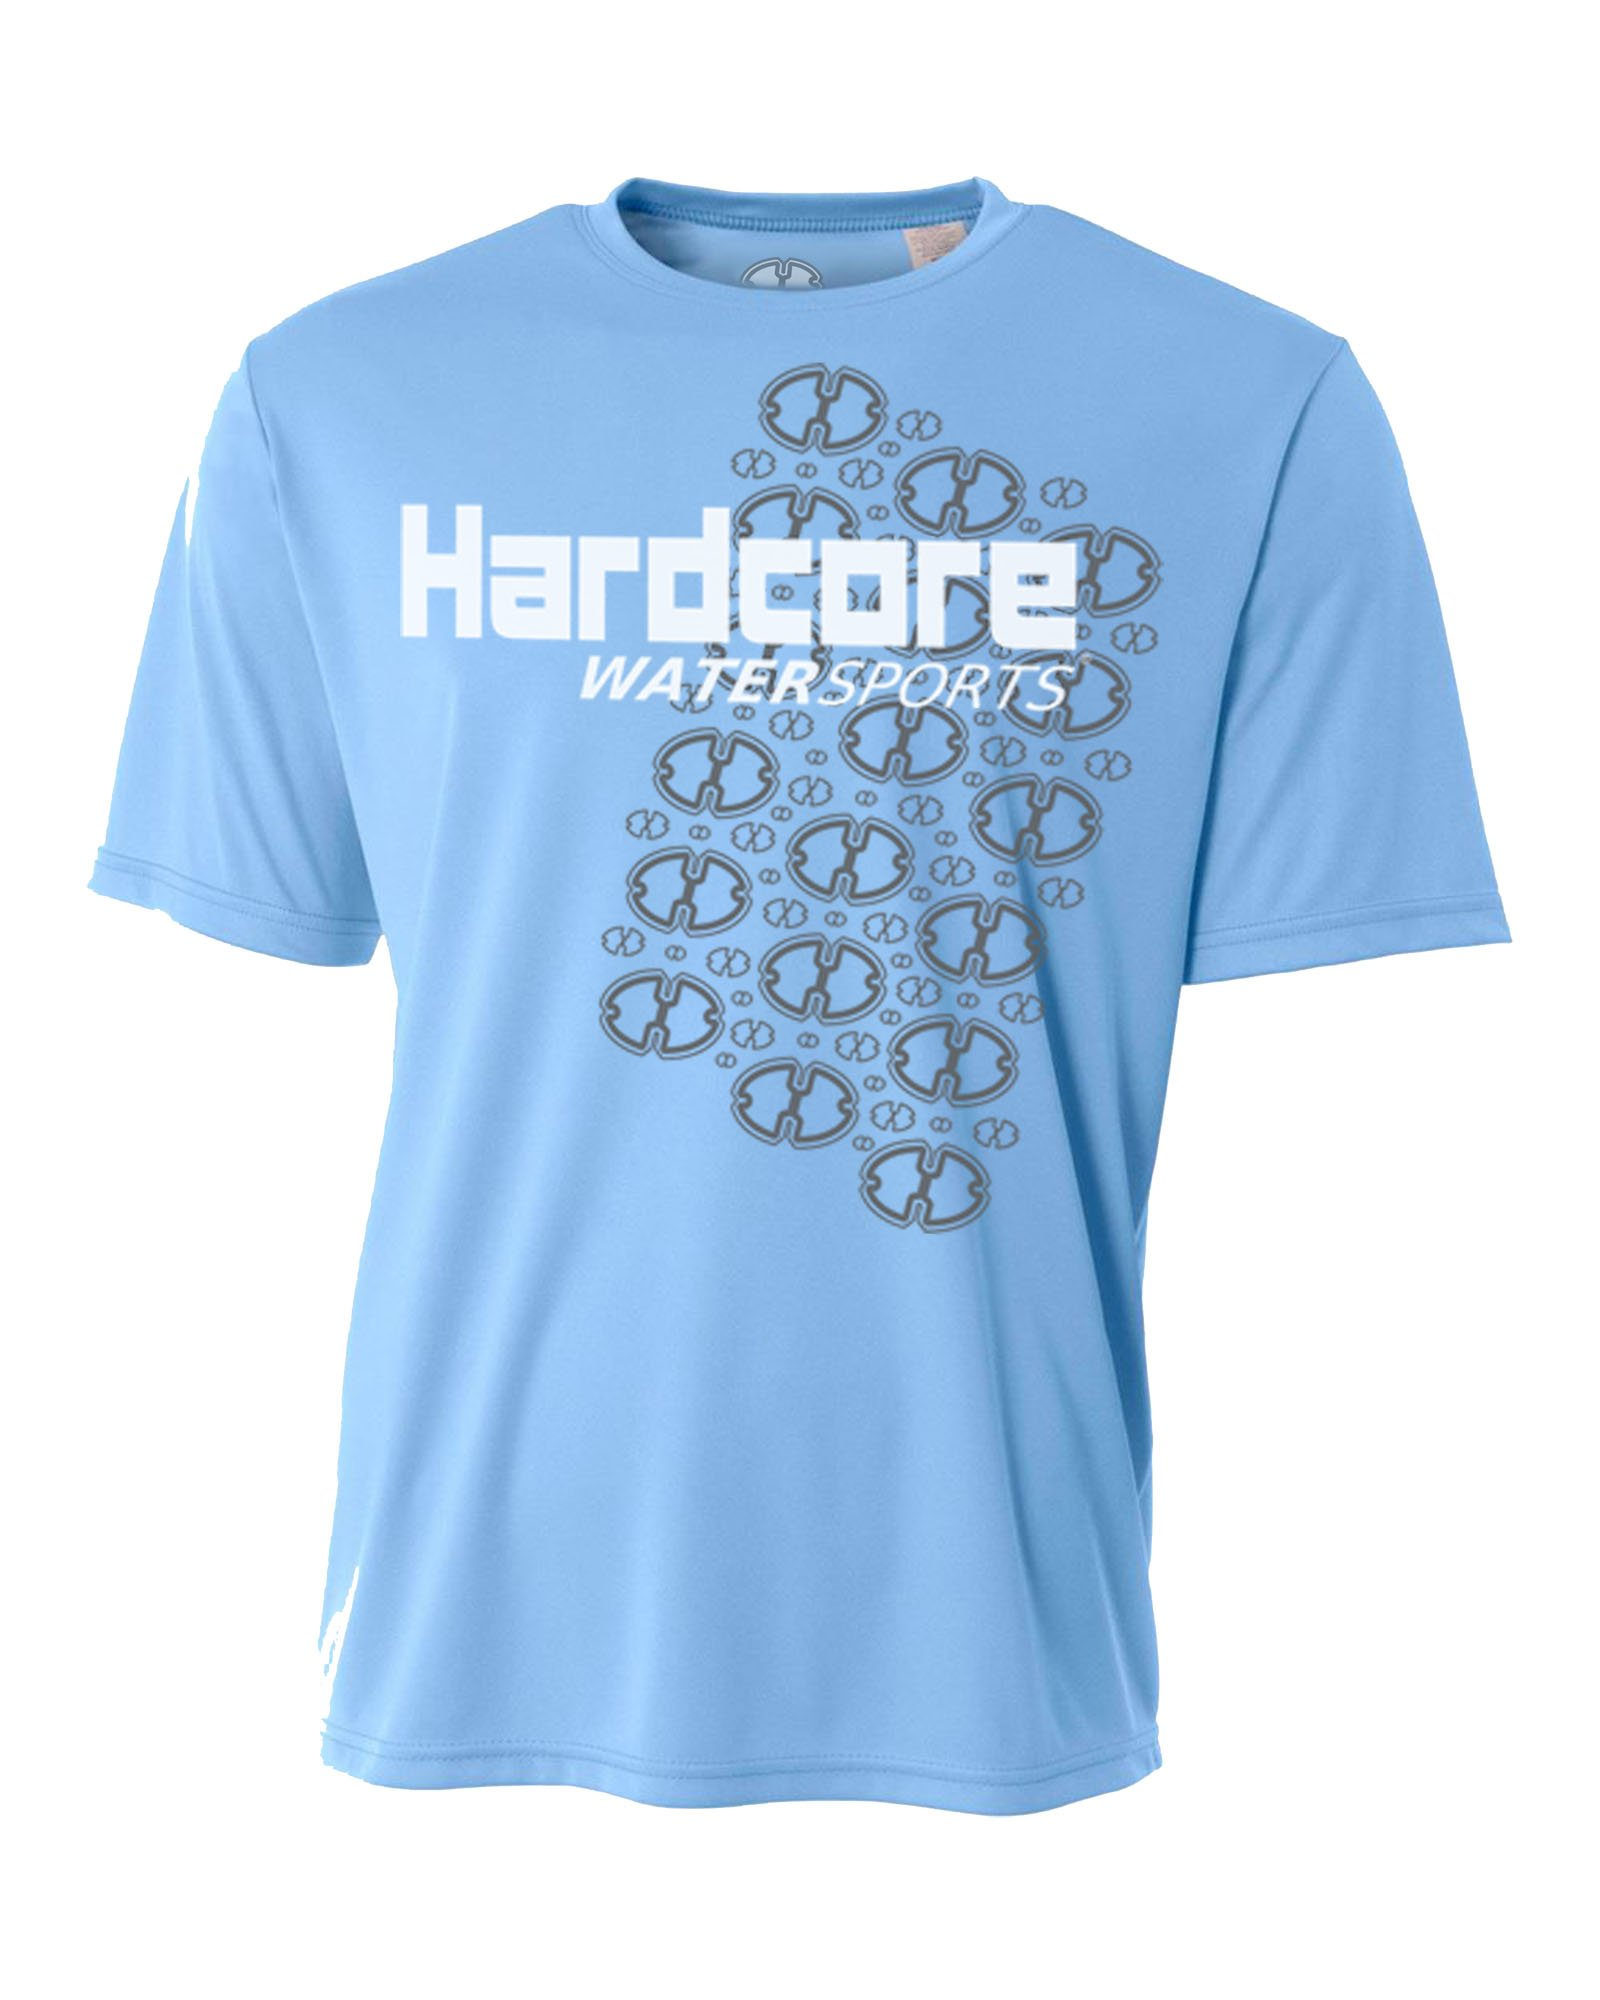 Hardcore Mens Rash Guard Surf Swim Shirt Water Sports SPF Protection Loose Fit Light Blue